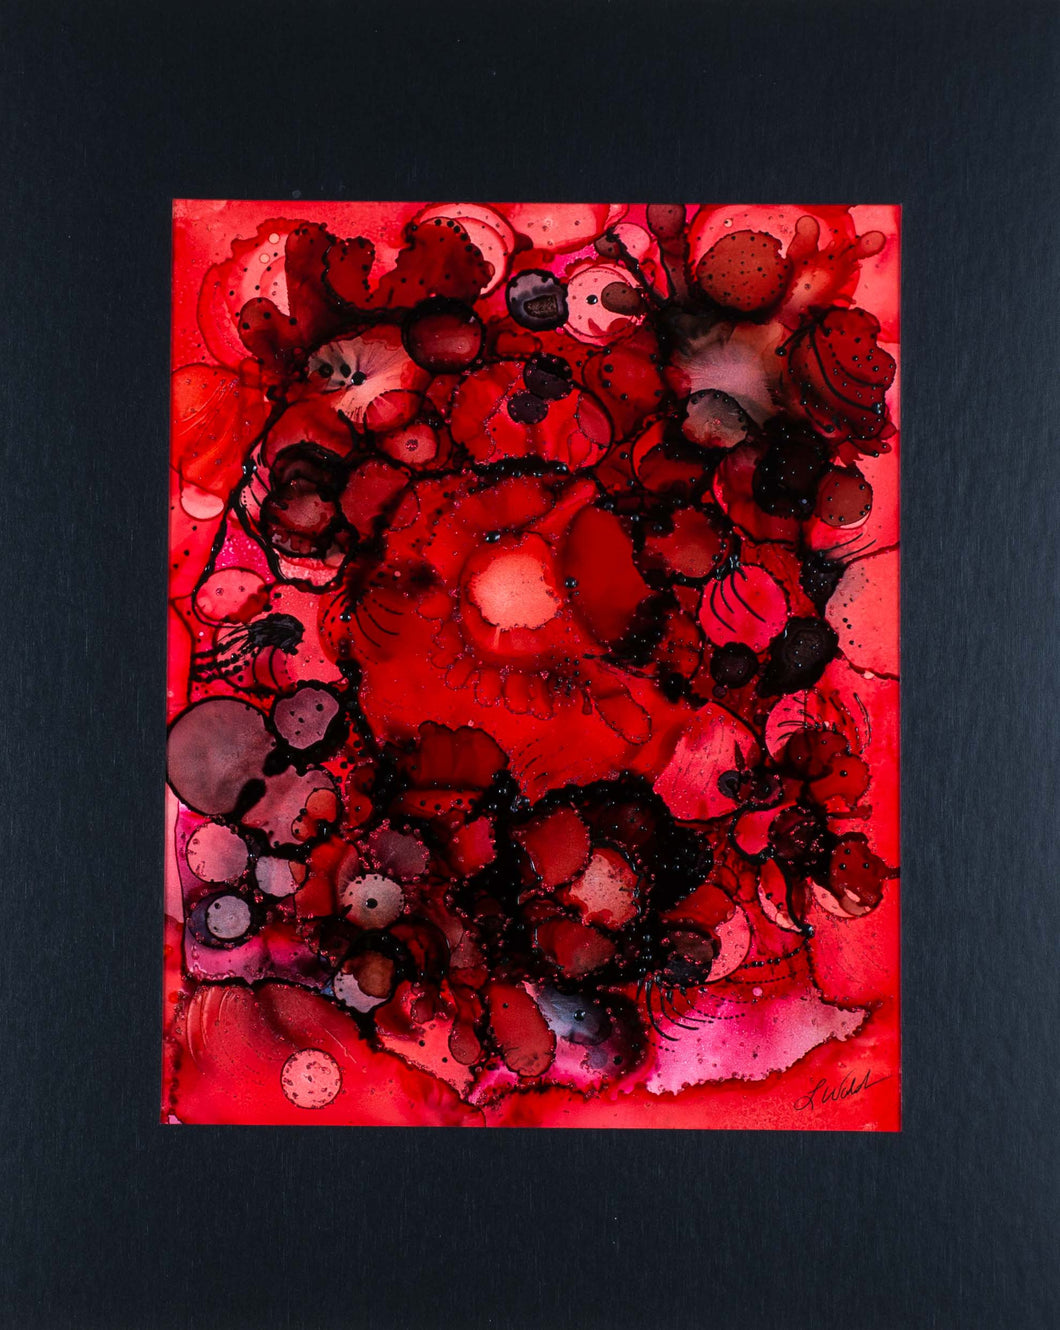 This beautiful alcohol ink is dramatic and deep. Circles of red, and contrasting black spiral around each other, like the powerful emotions of love and anger.